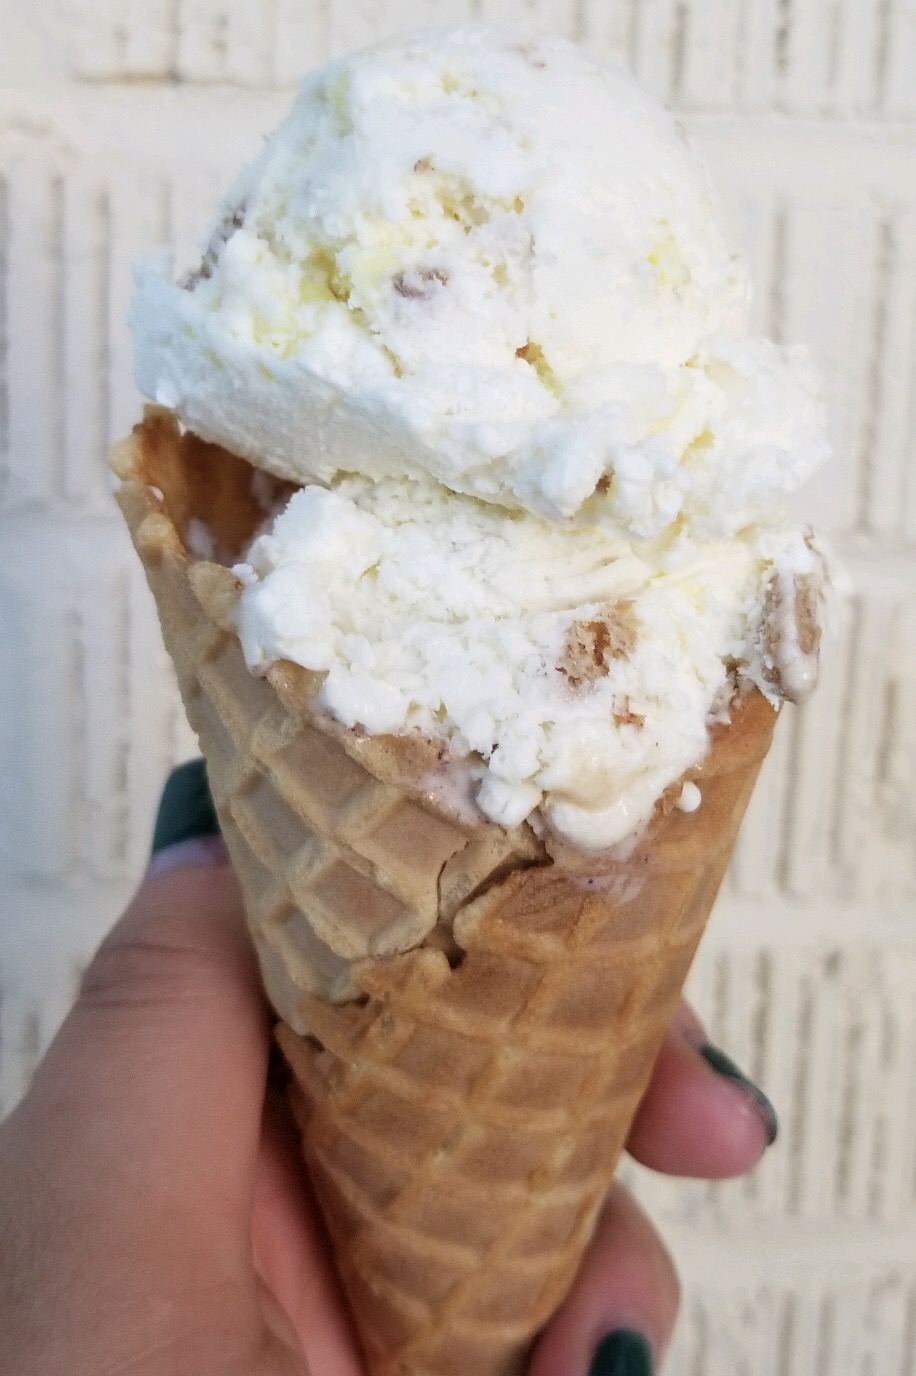 Mayfield Creamery Ice Cream Flavor Guide